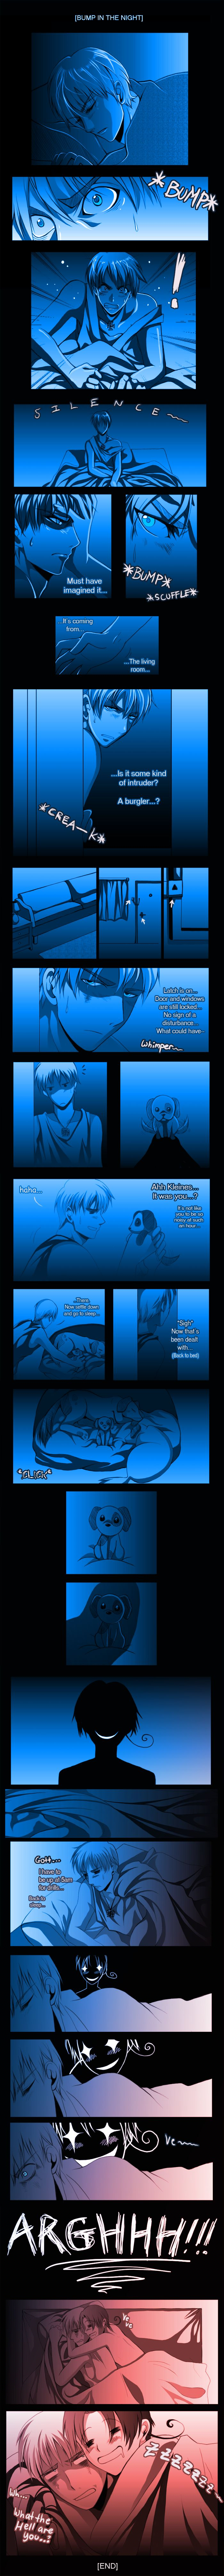 APH - Bump in the Night by R-ninja.deviantart.com on @deviantART - found this way too funny.. Ve~!